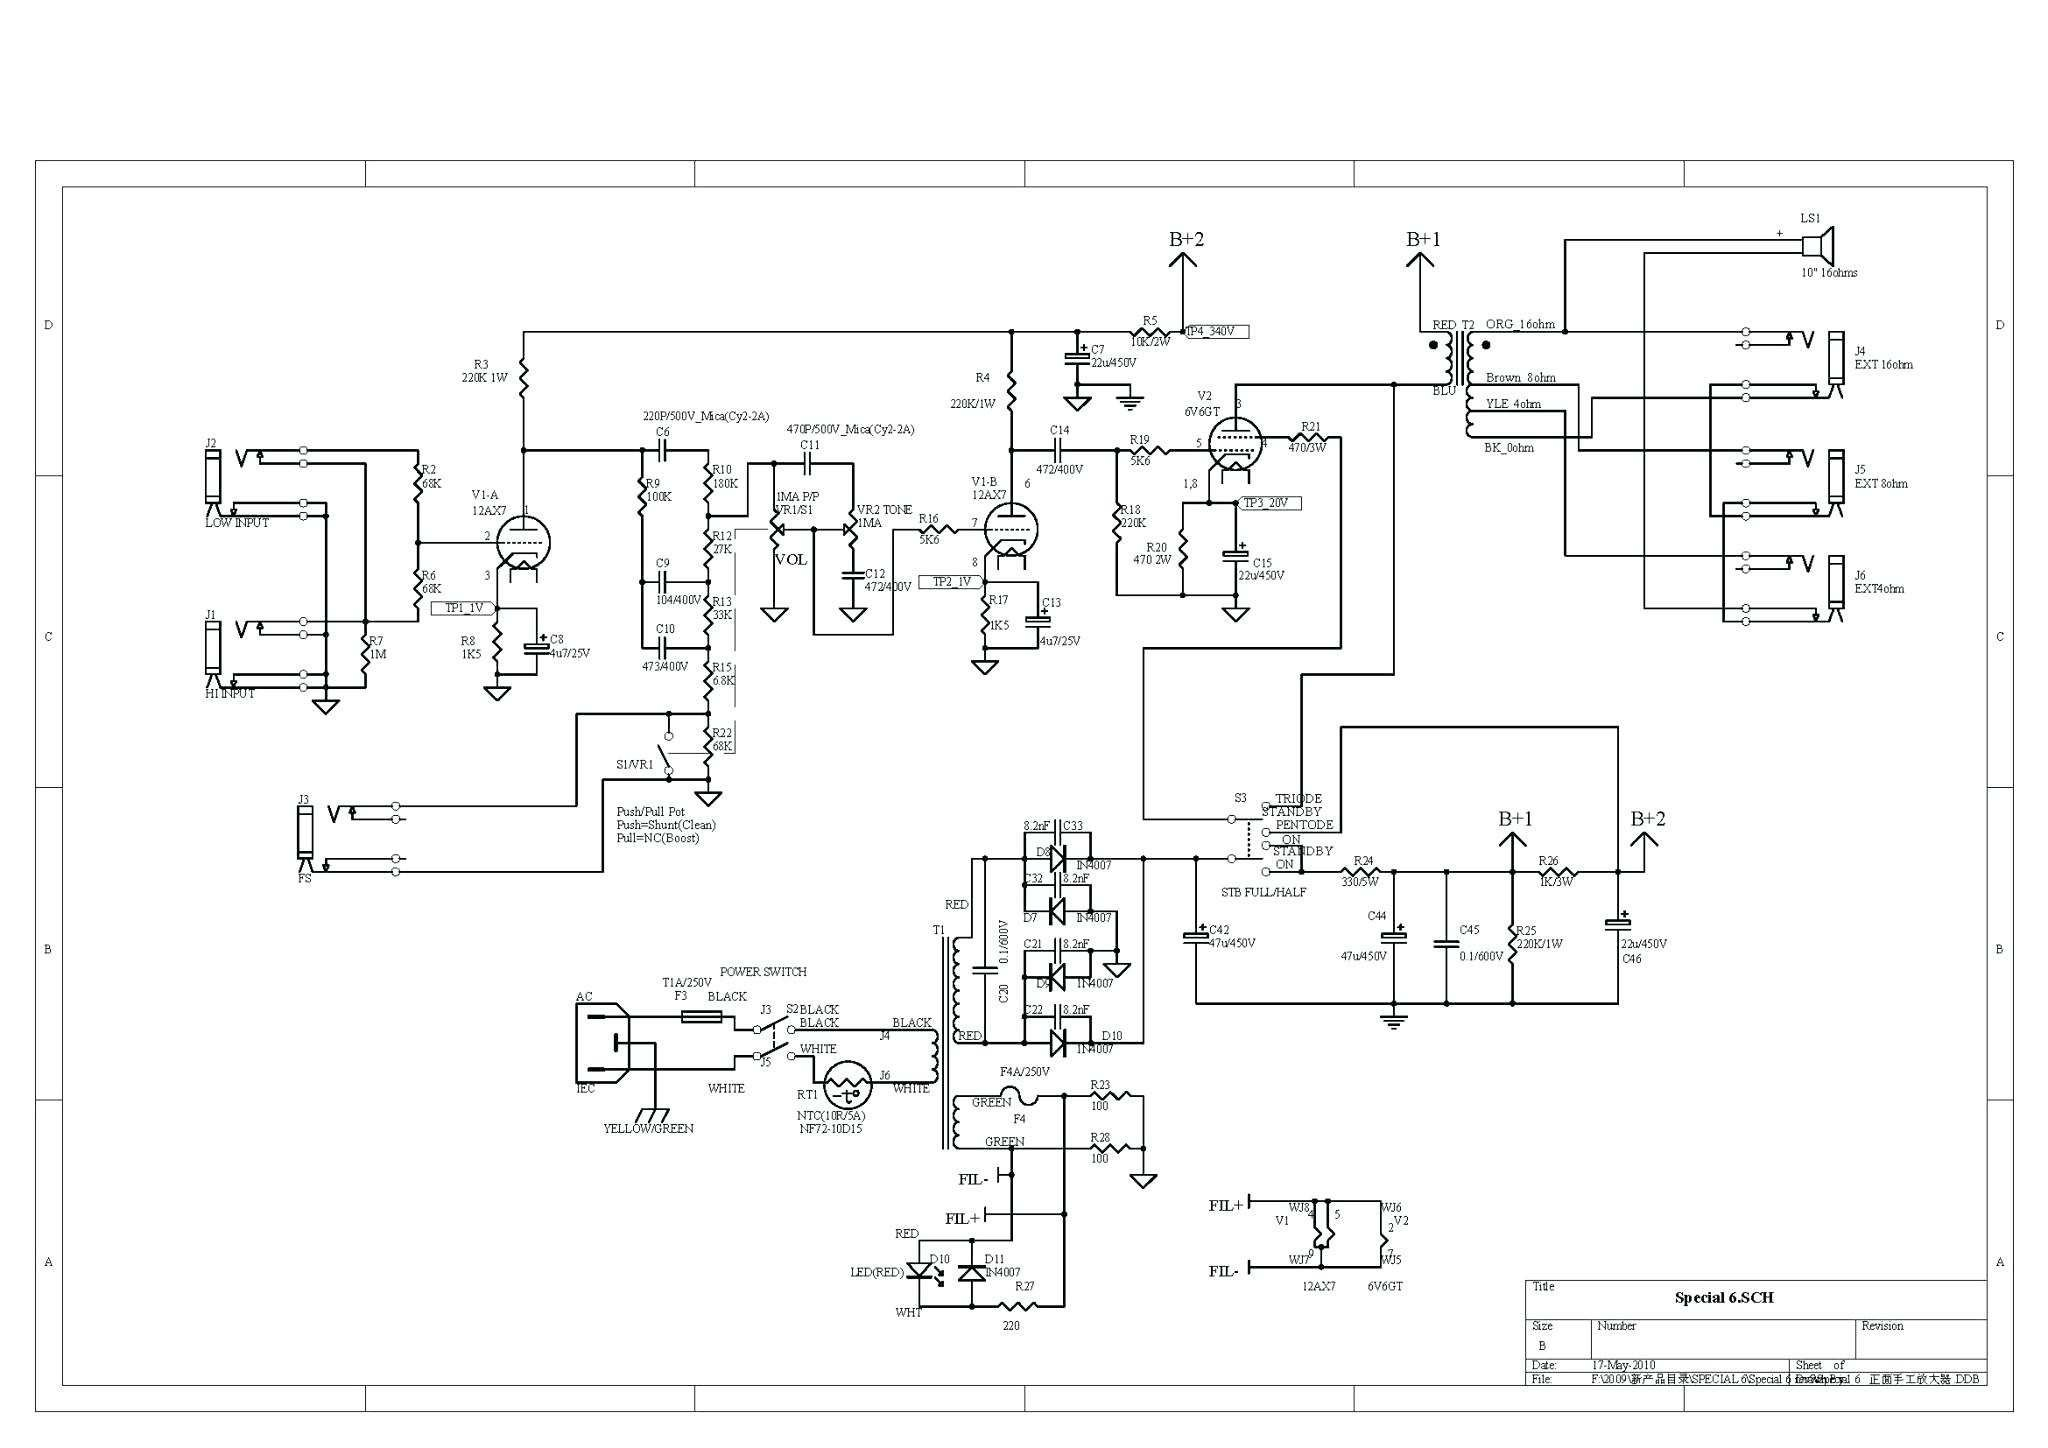 Awesome Potentiometer Wiring Diagram Electric Scooter s